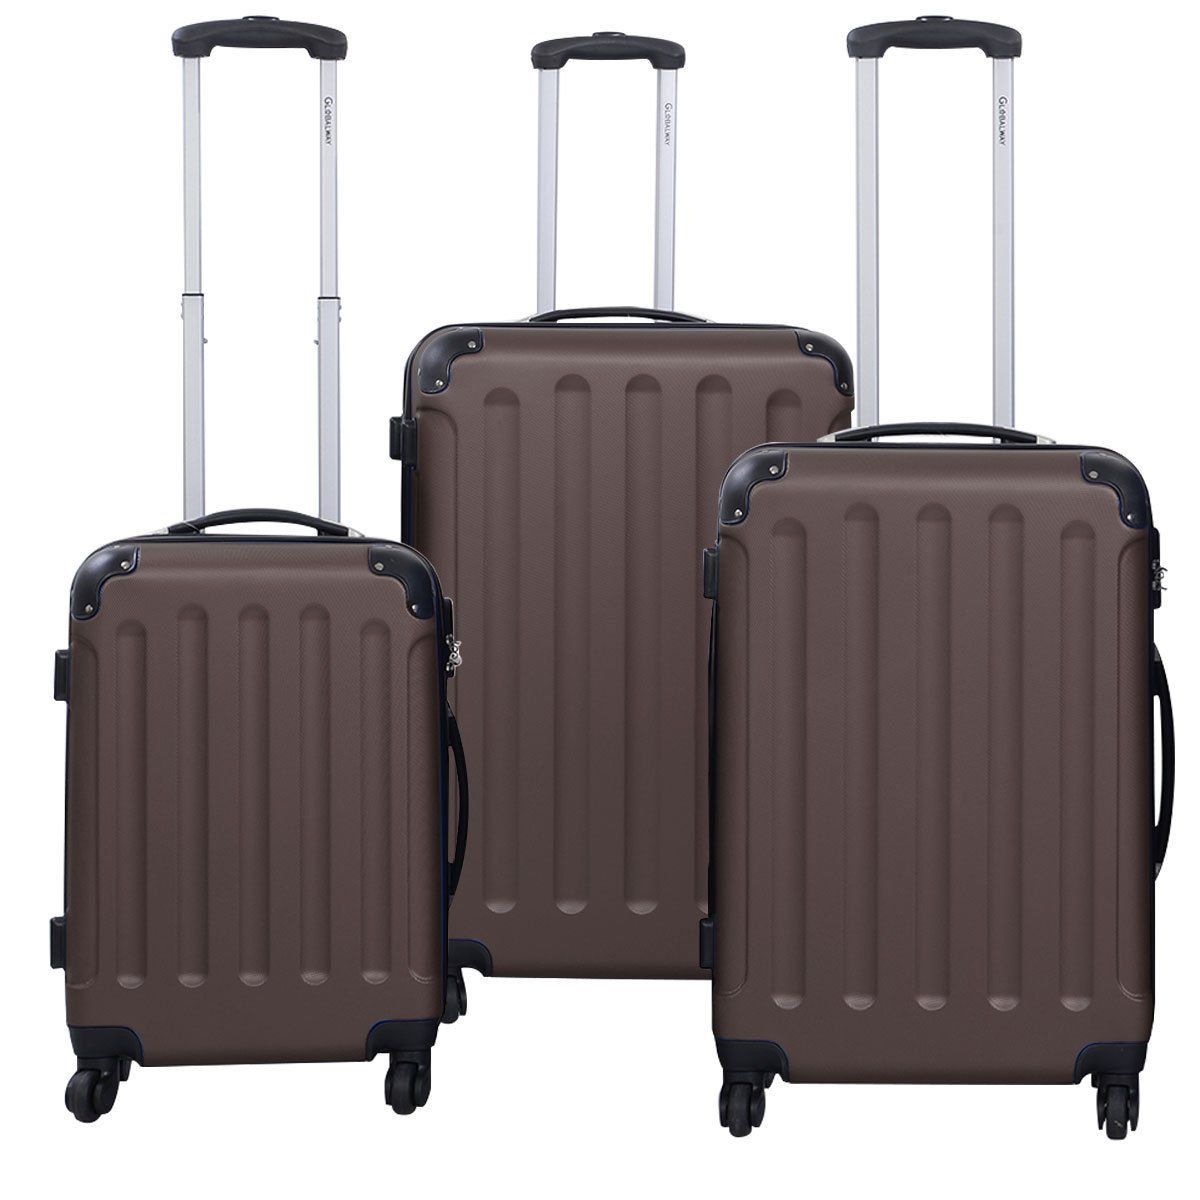 3 Pcs Luggage Travel Set Bag ABS+PC Trolley Suitcase Brown by tamsun